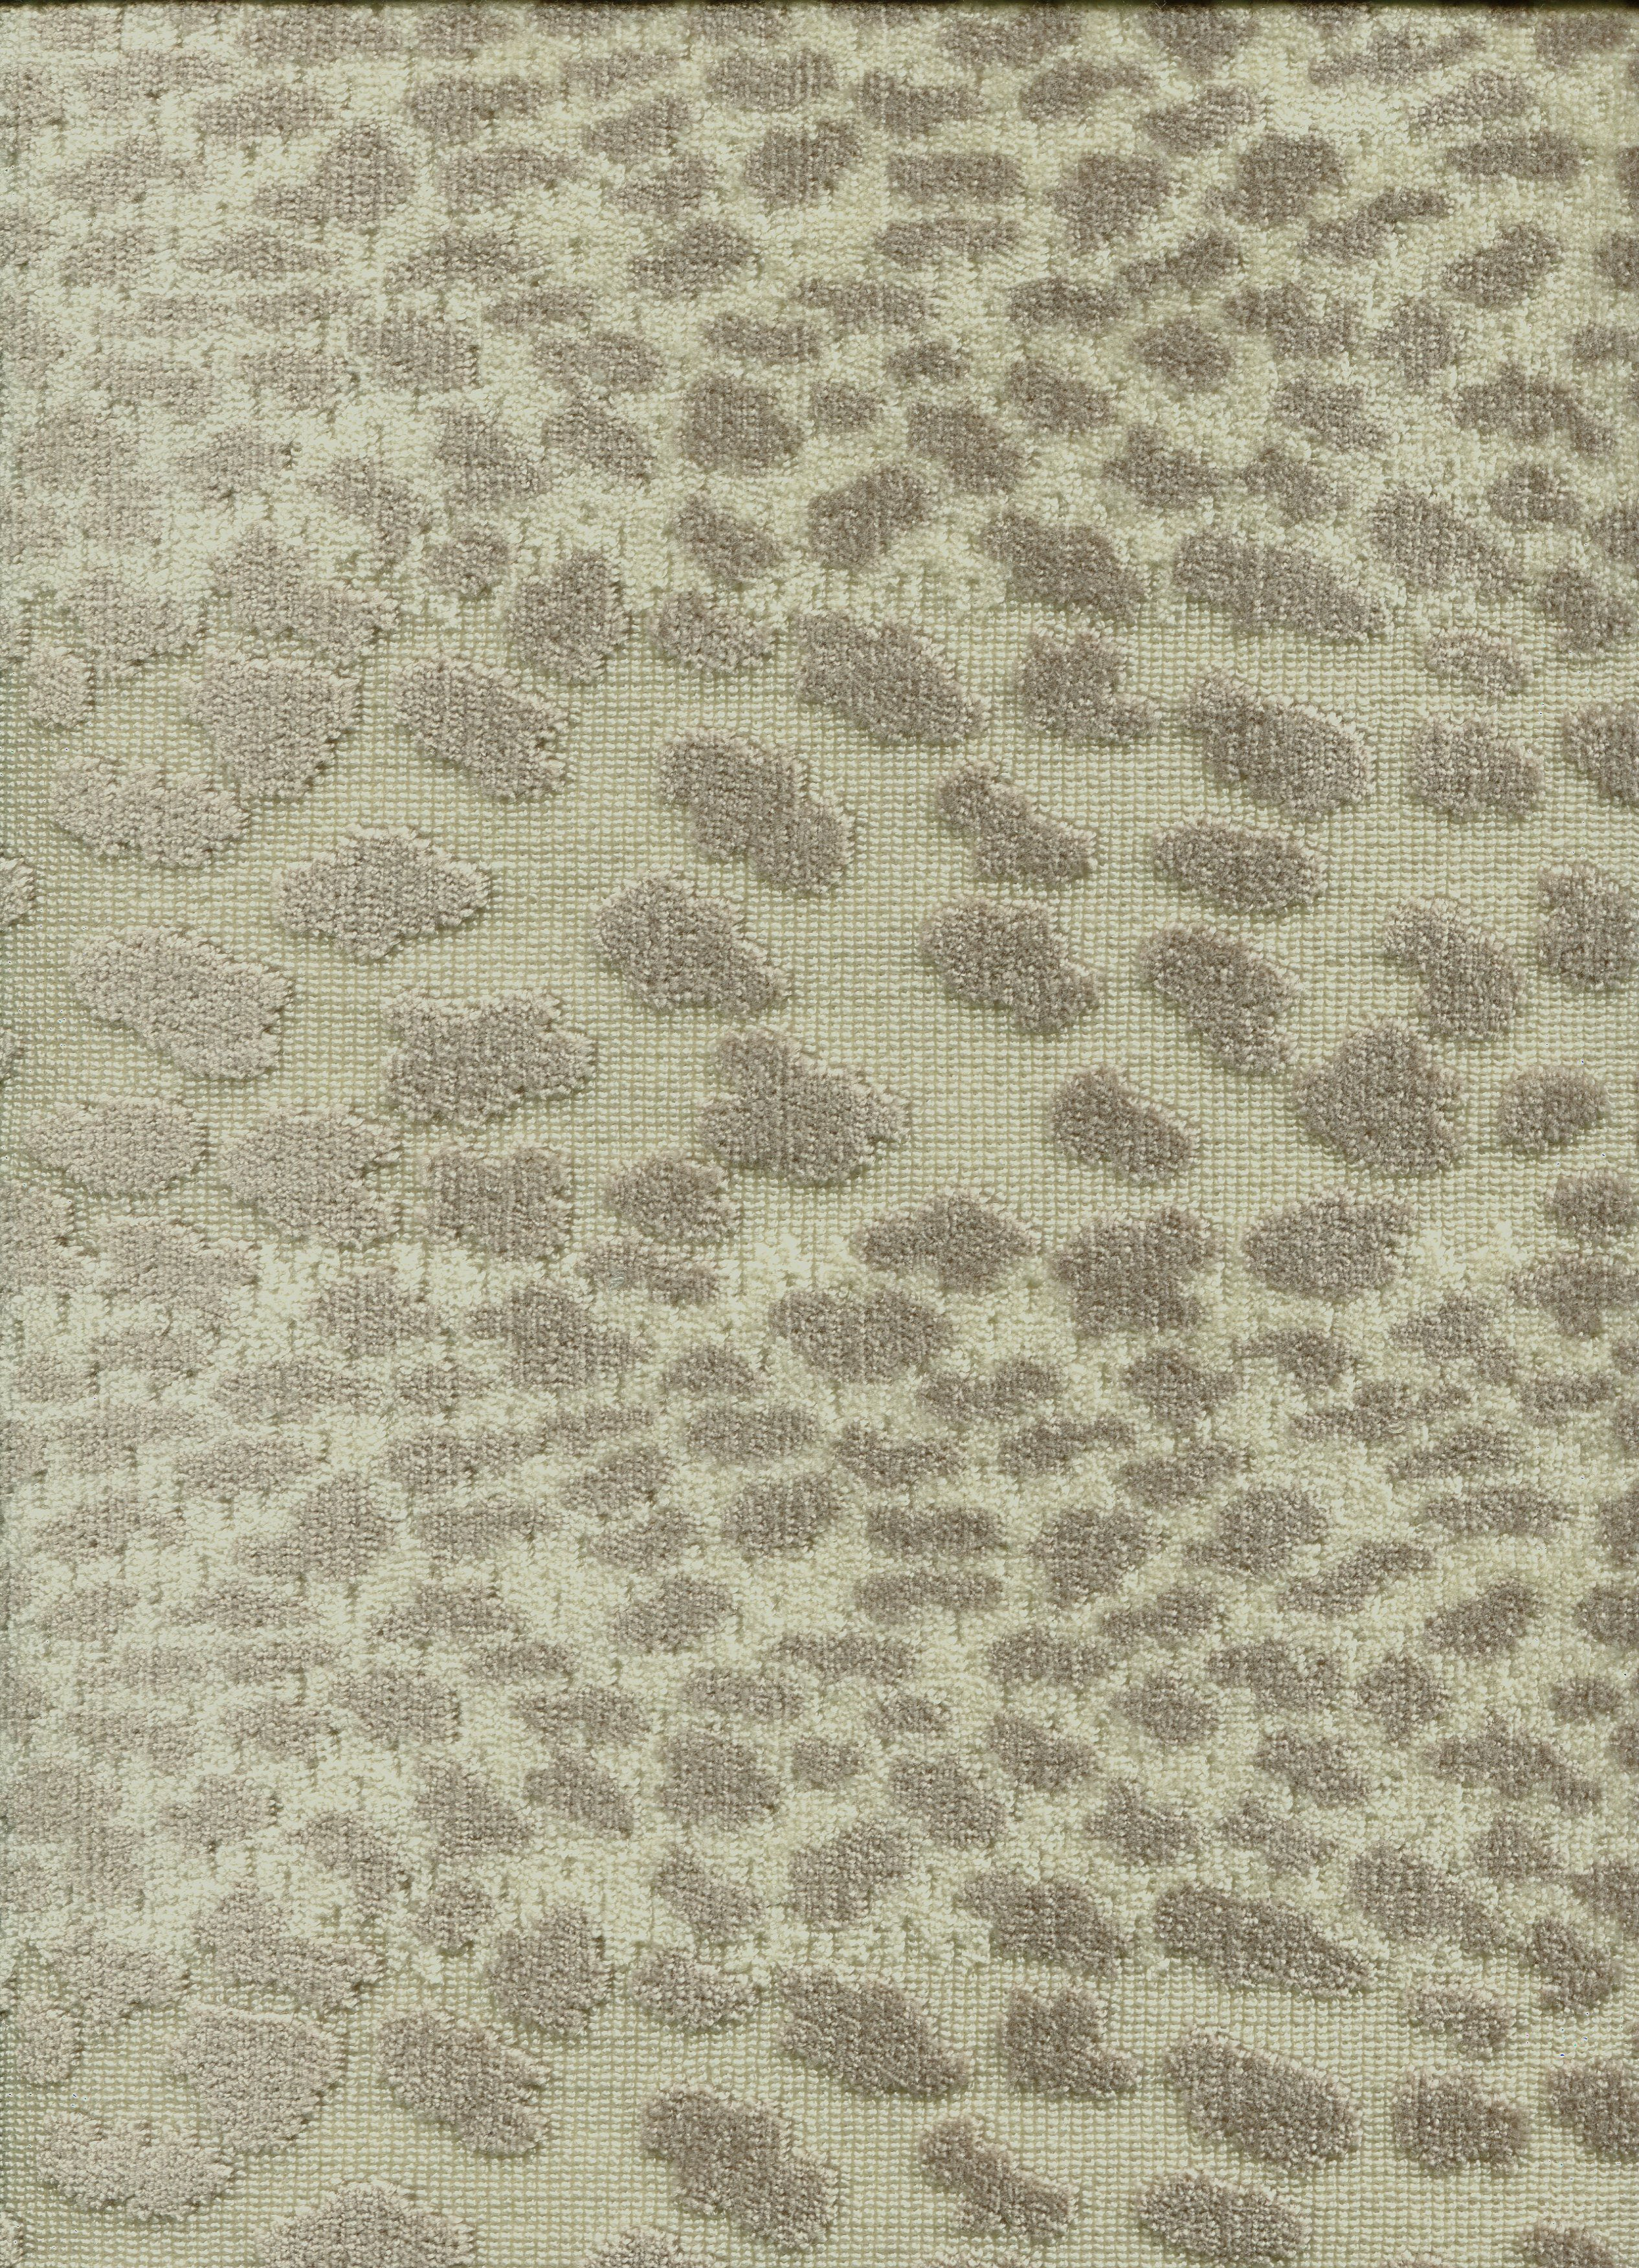 Novelty Img9048 From Lotsofabric Com This Chenille Upholstery